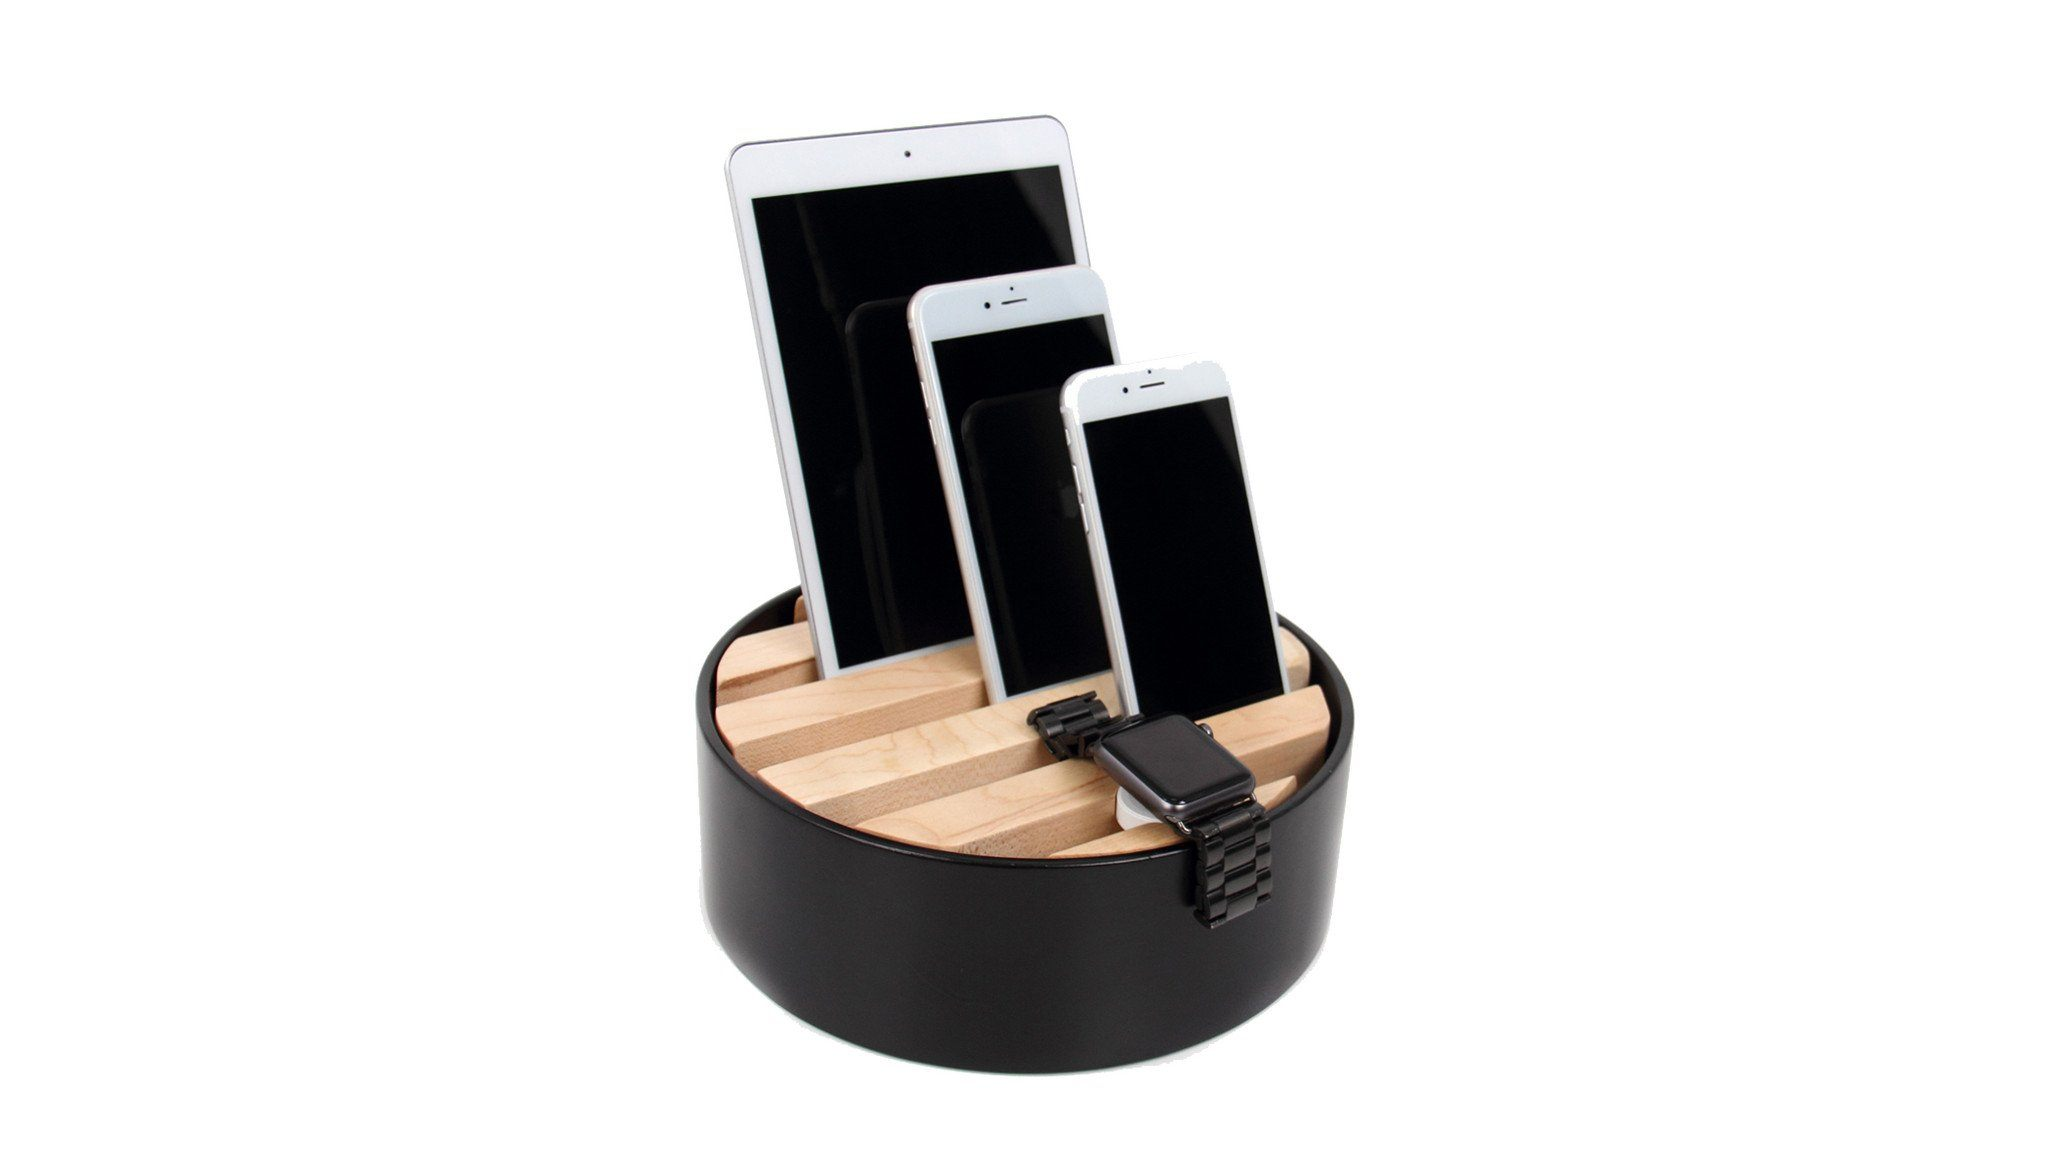 Trellis Furniture - TRELLIS Desktop Charger Black